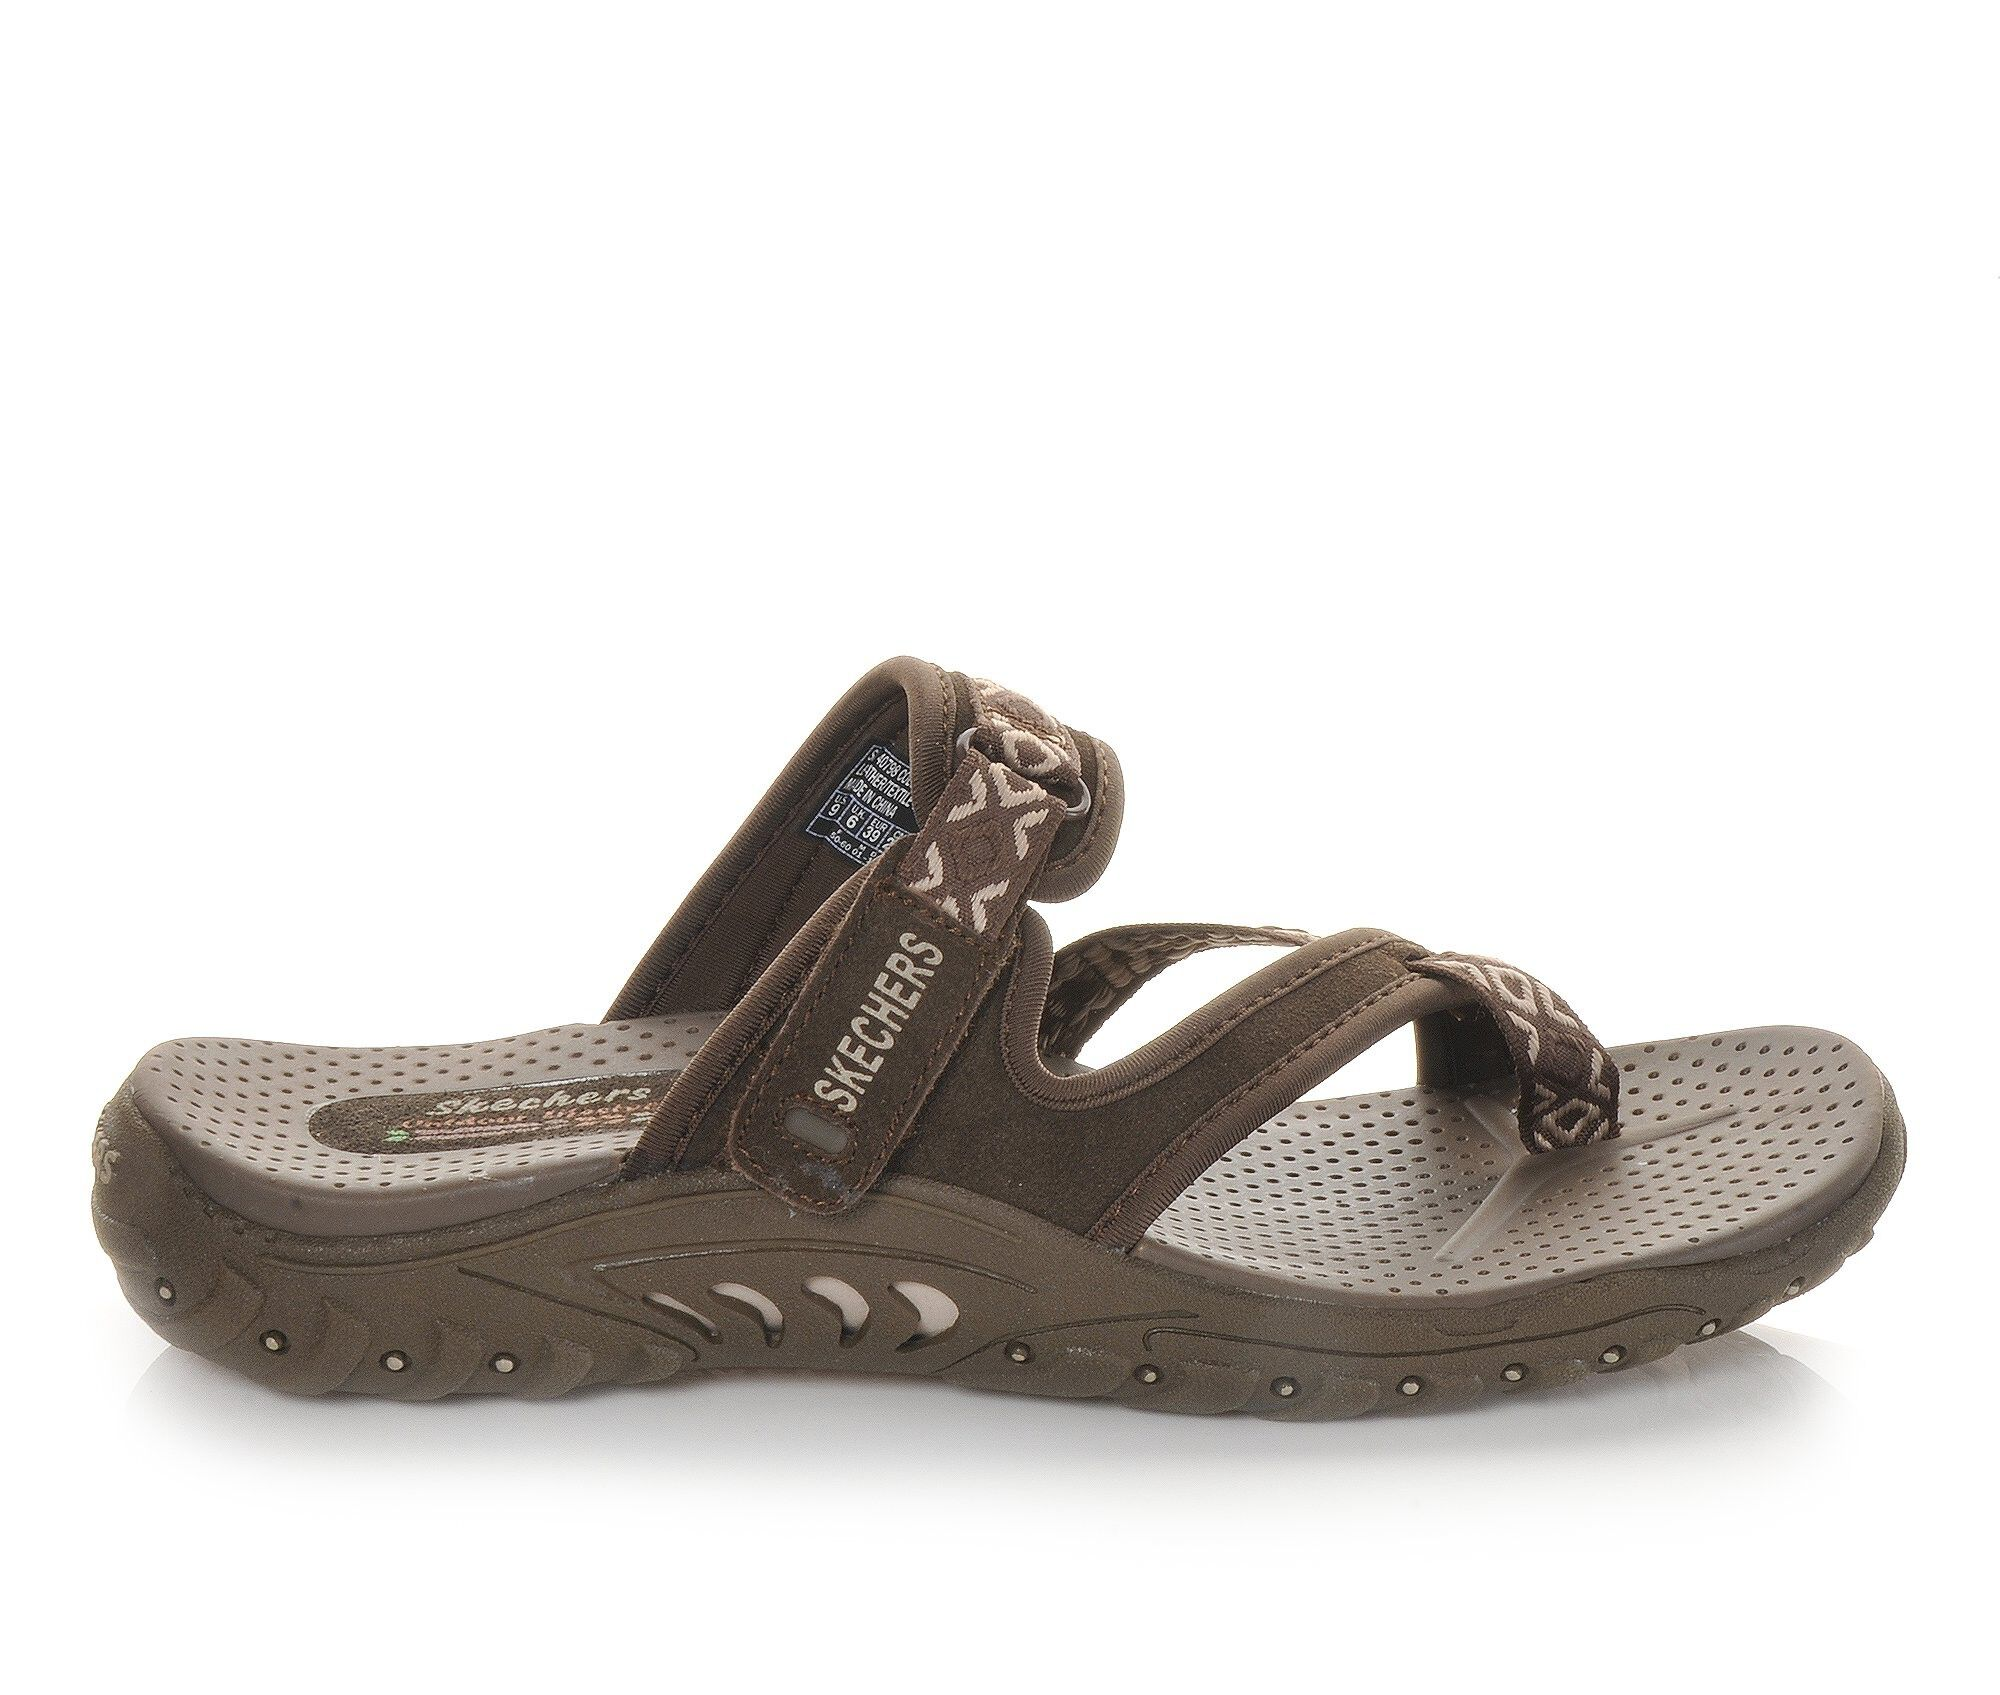 buy authentic new arrivals Women's Skechers Trailway 40798 Hiking Sandals Chocolate